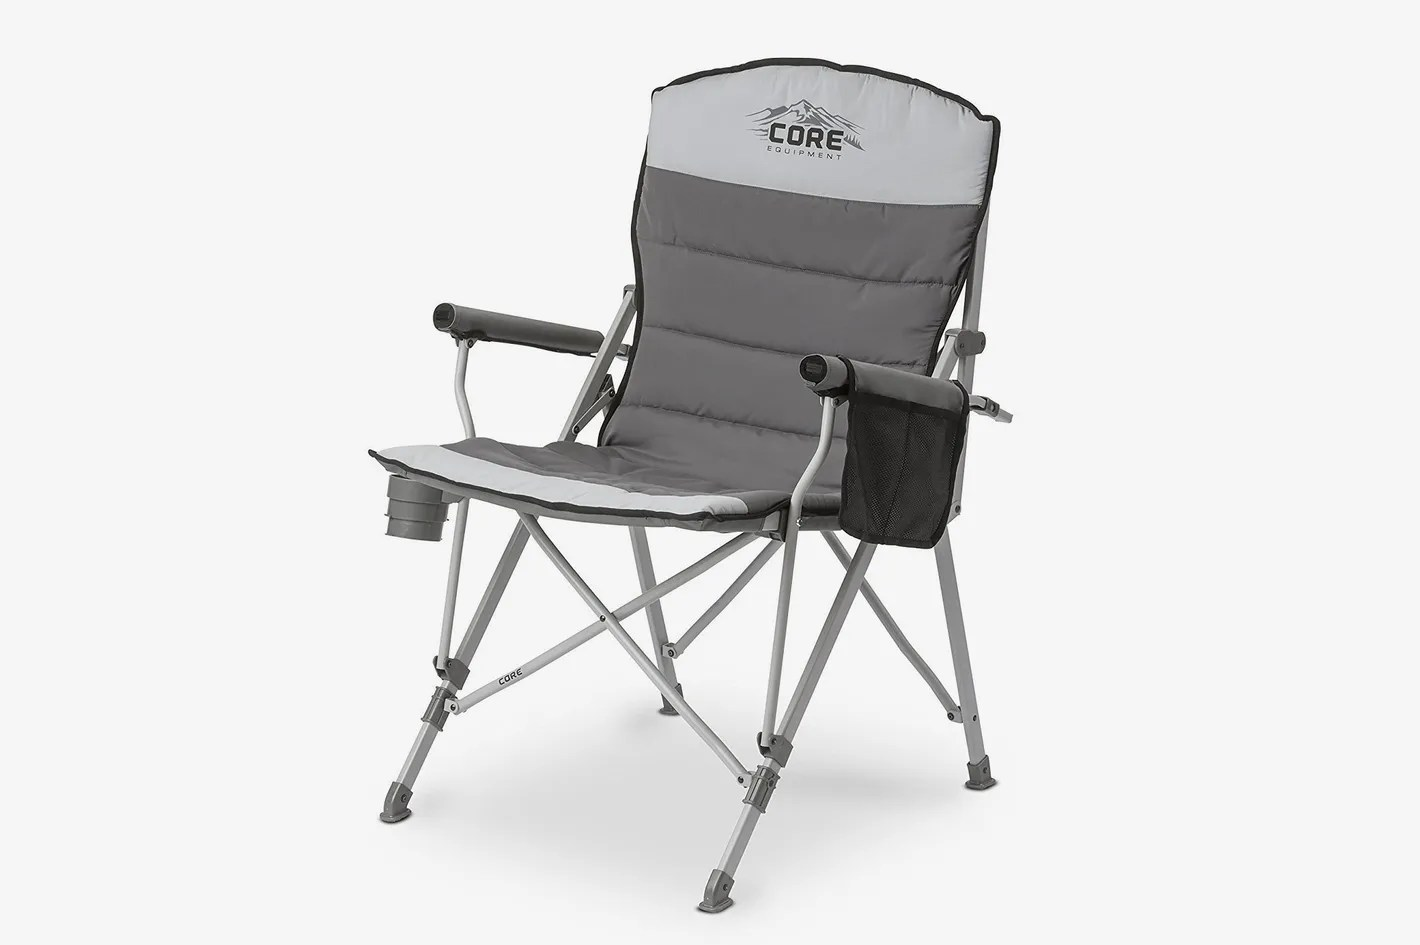 Outdoor Folding Bag Chairs 11 Best Lawnchairs And Camping Chairs 2018